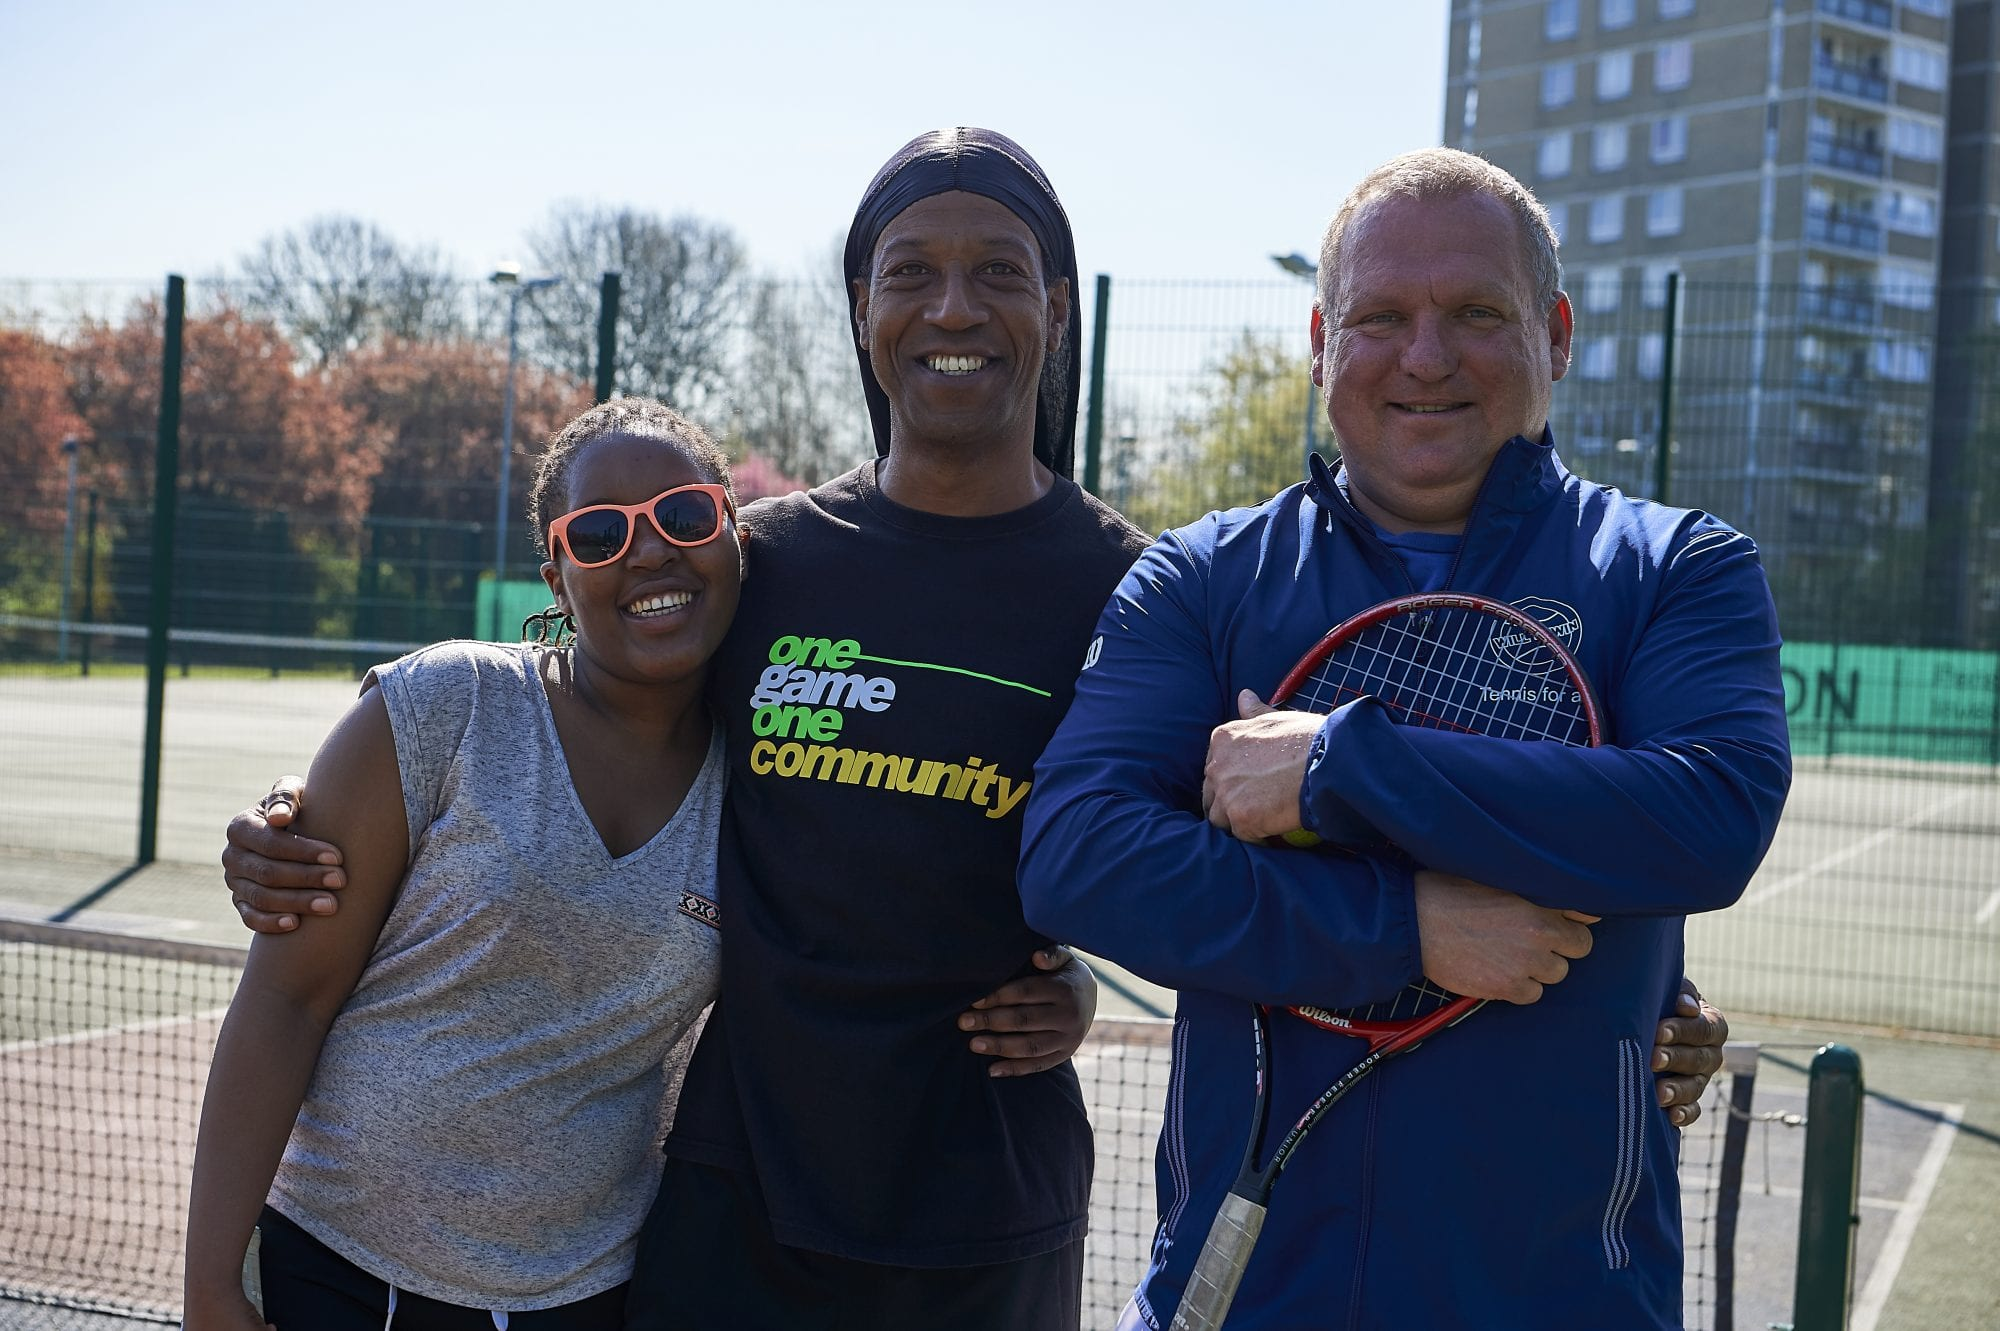 Image of 3 people standing on tennis court smiling